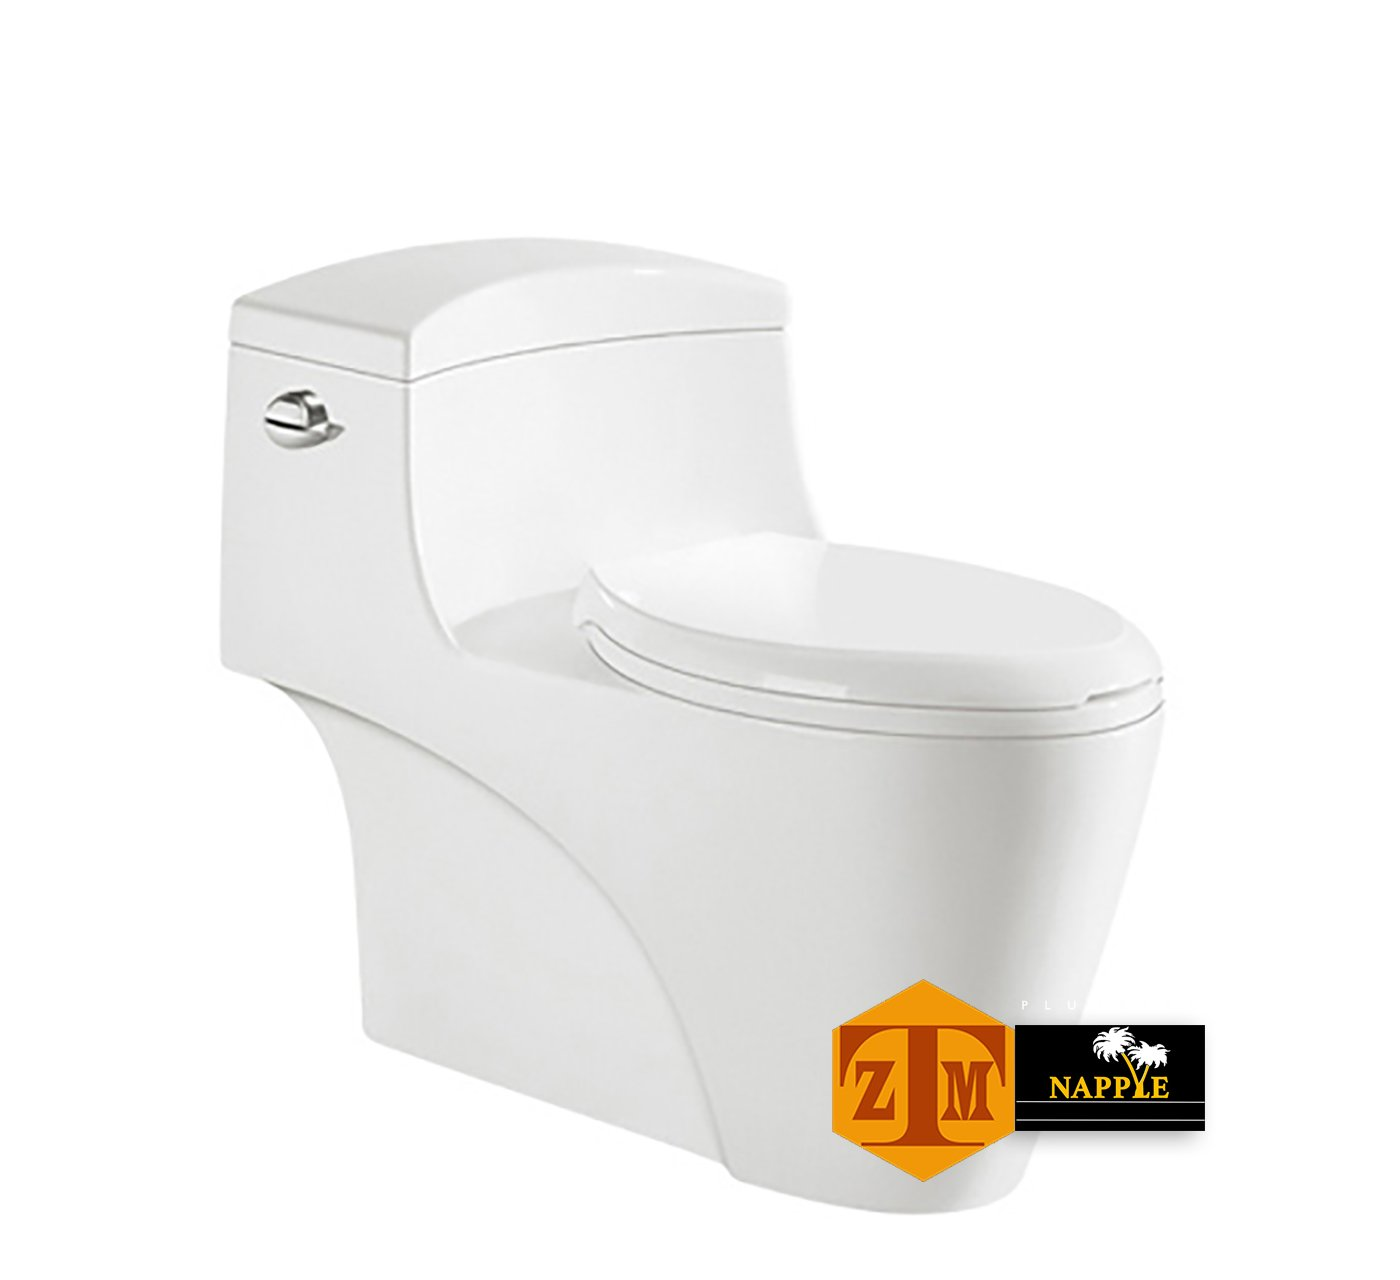 NAYT98144P Luxury SIPHONIC White Porcelain One-Piece Construction Toilet, With Round Seat and Comfort Height, A Siphonic High Efficiency Eco-Friendly Action w/ Dual Flush 1.6/1.0GPF, UPC Certified